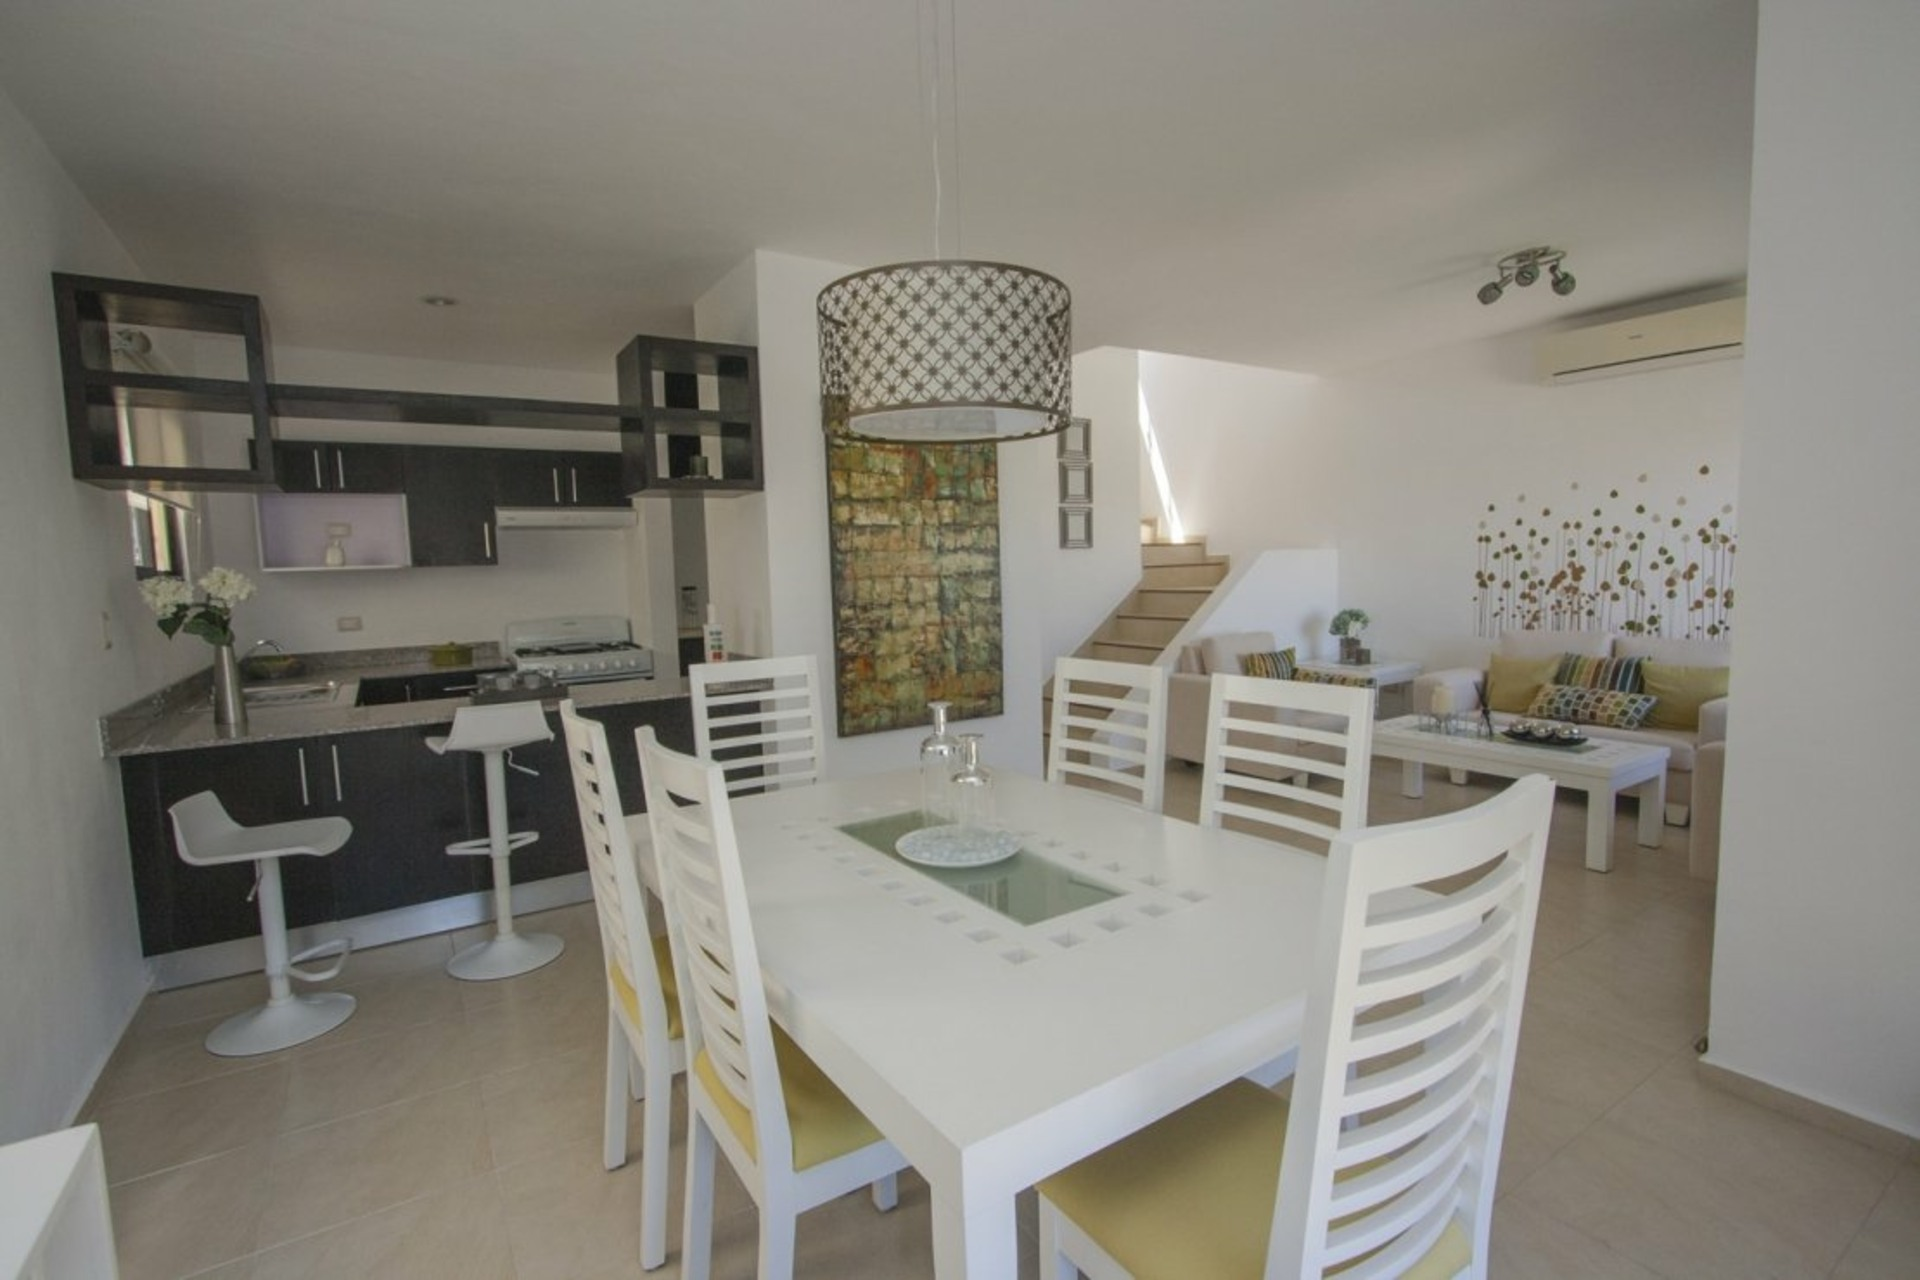 image 3 - House For sale Autres pays / Other countries - 8 rooms